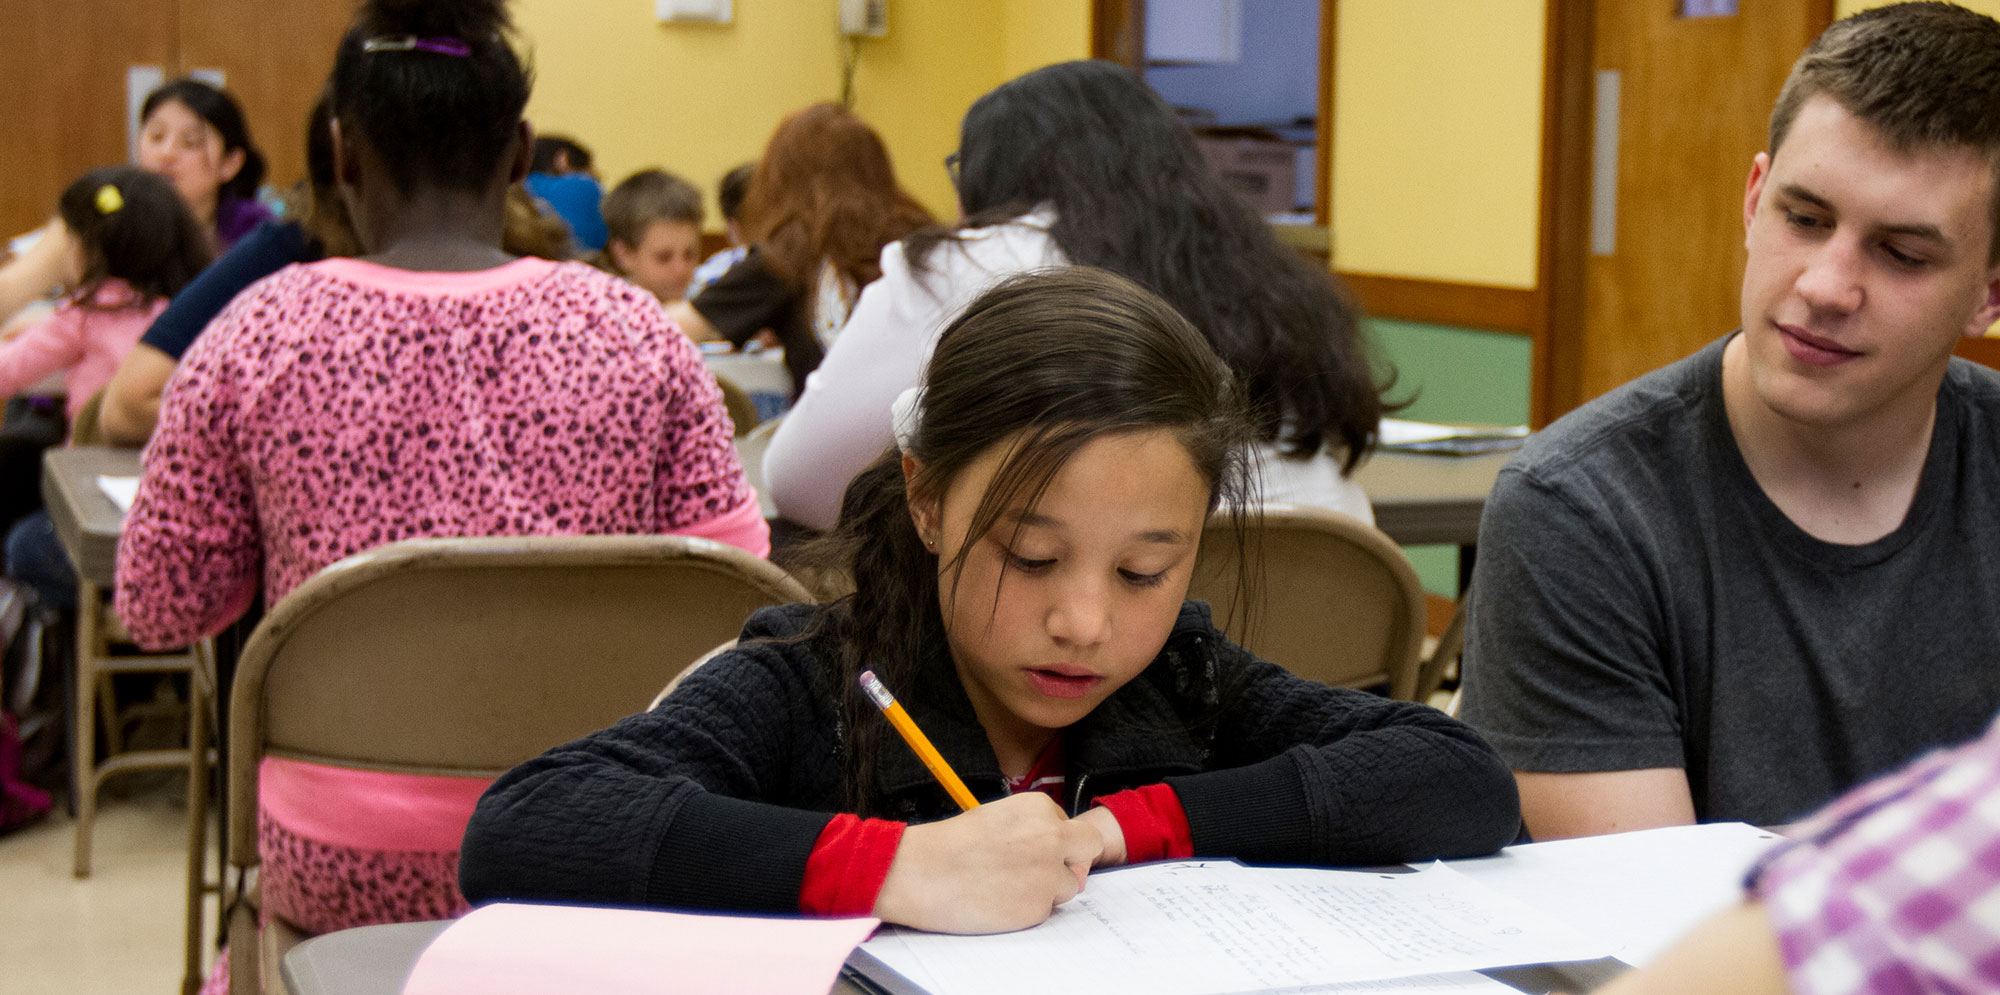 Young child working on homework